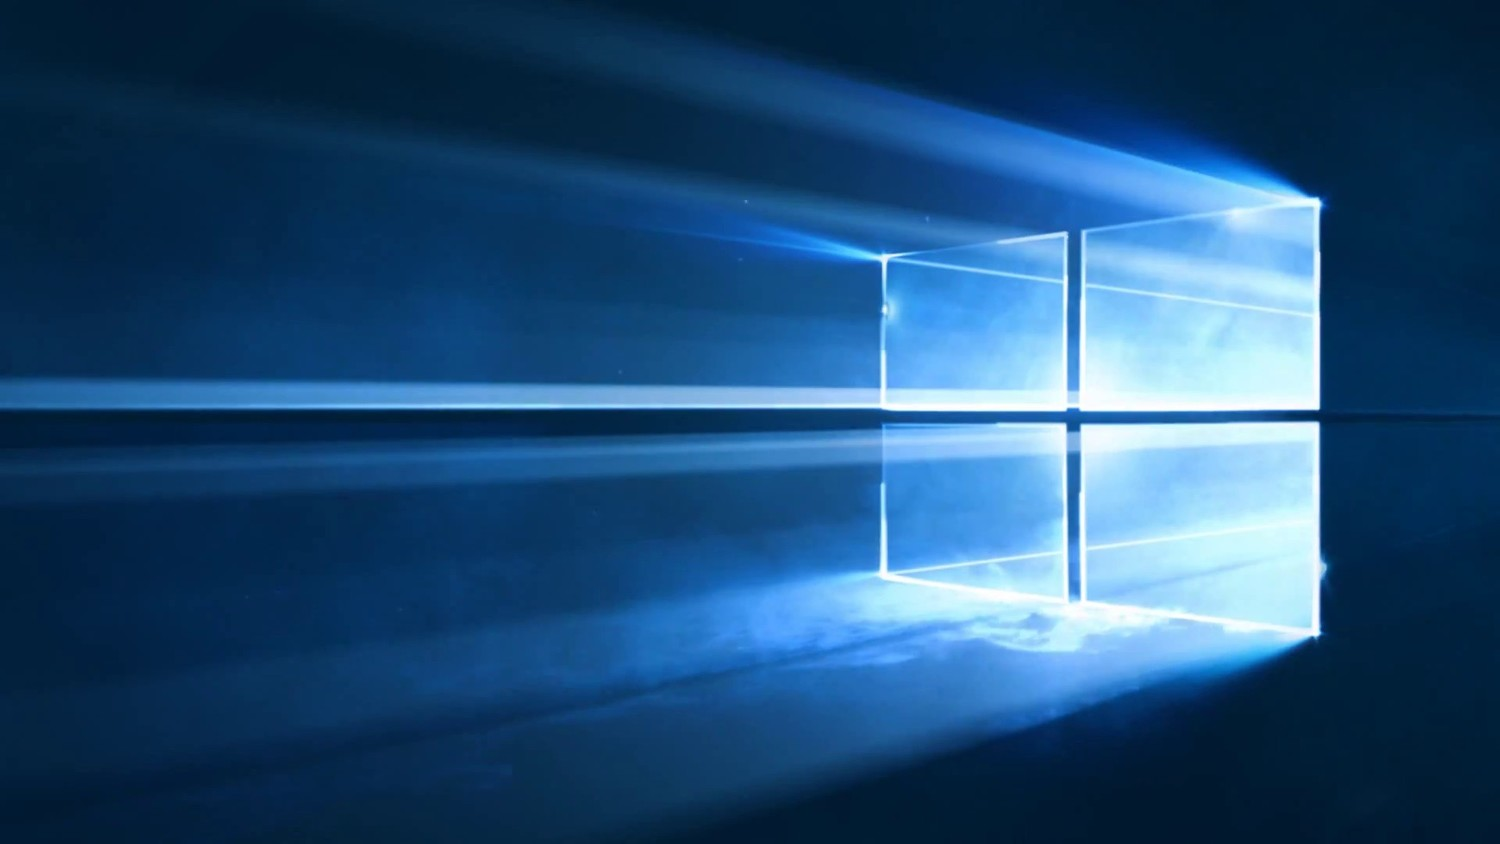 How to Get Ready for Windows 10 in Three Easy Steps